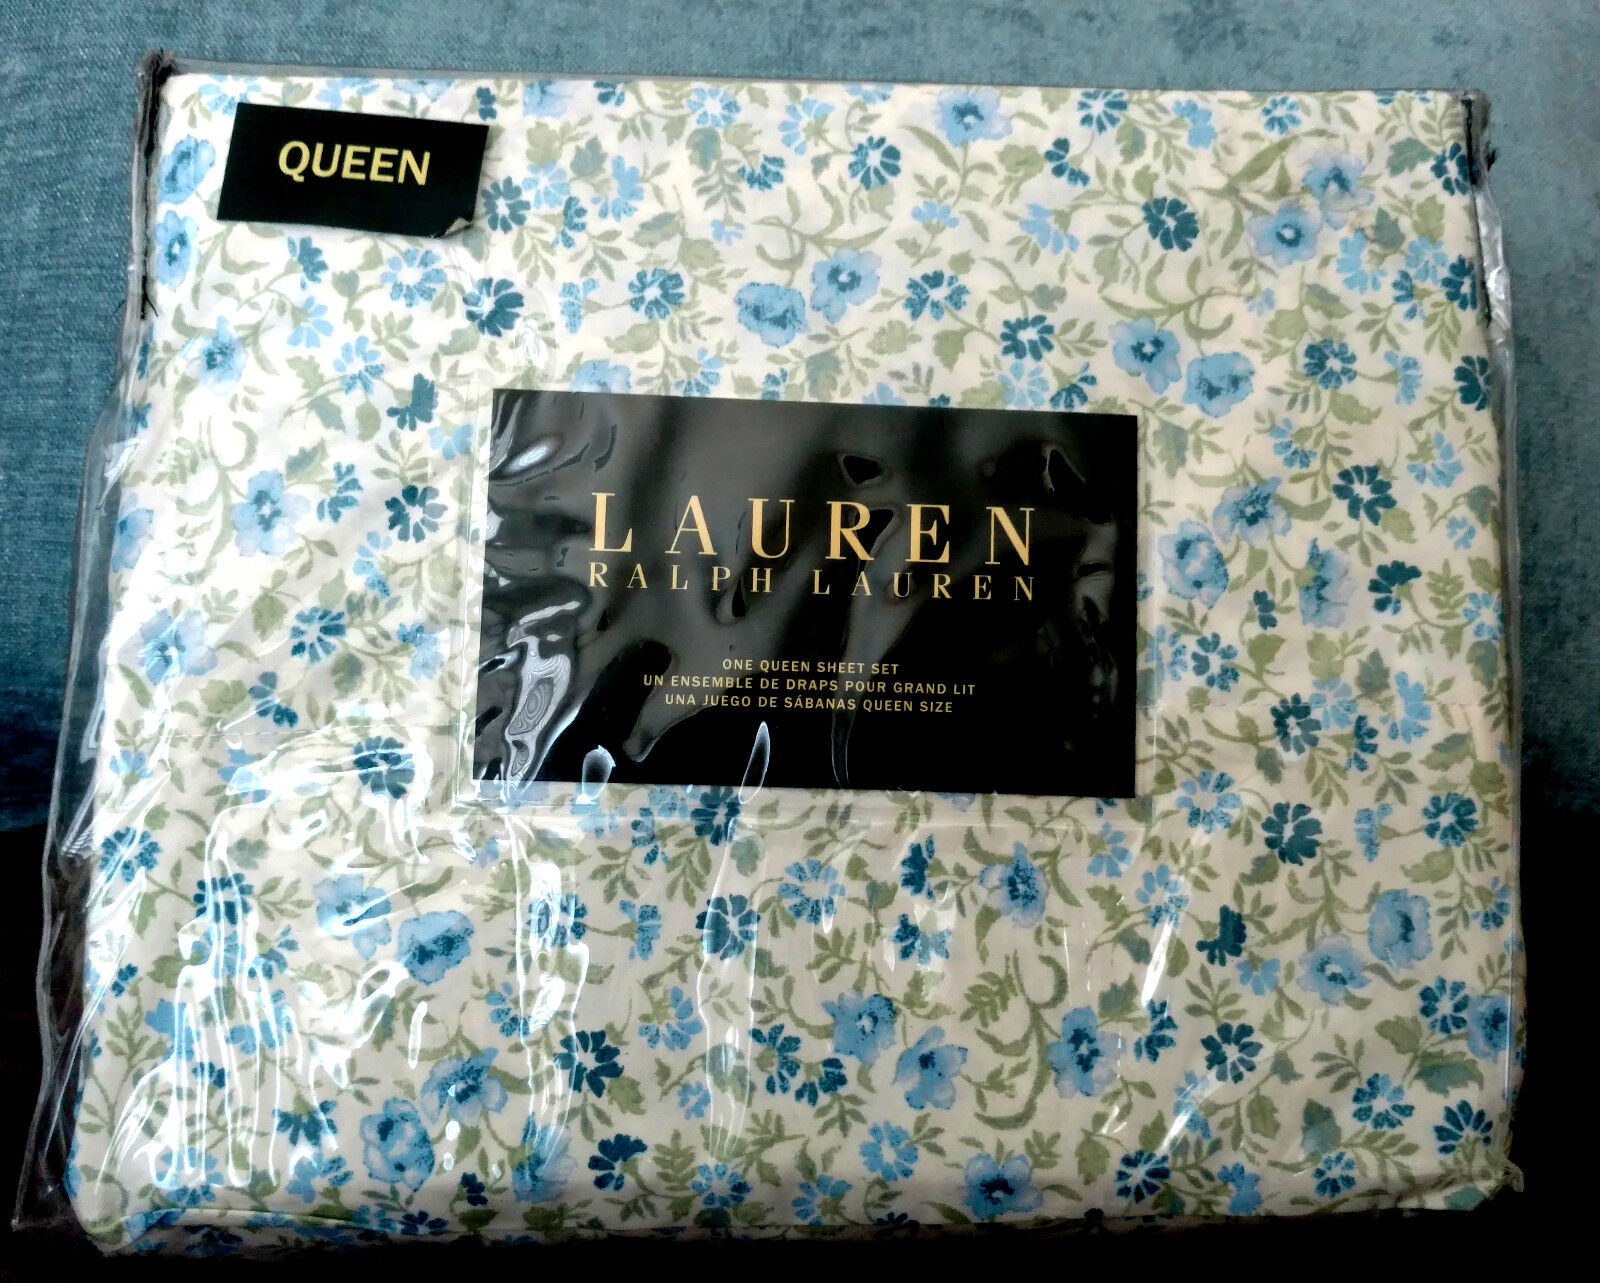 Ralph Lauren QUEEN 4 PC Cotton Sheet Set - Beautiful Blau and Grün Flower